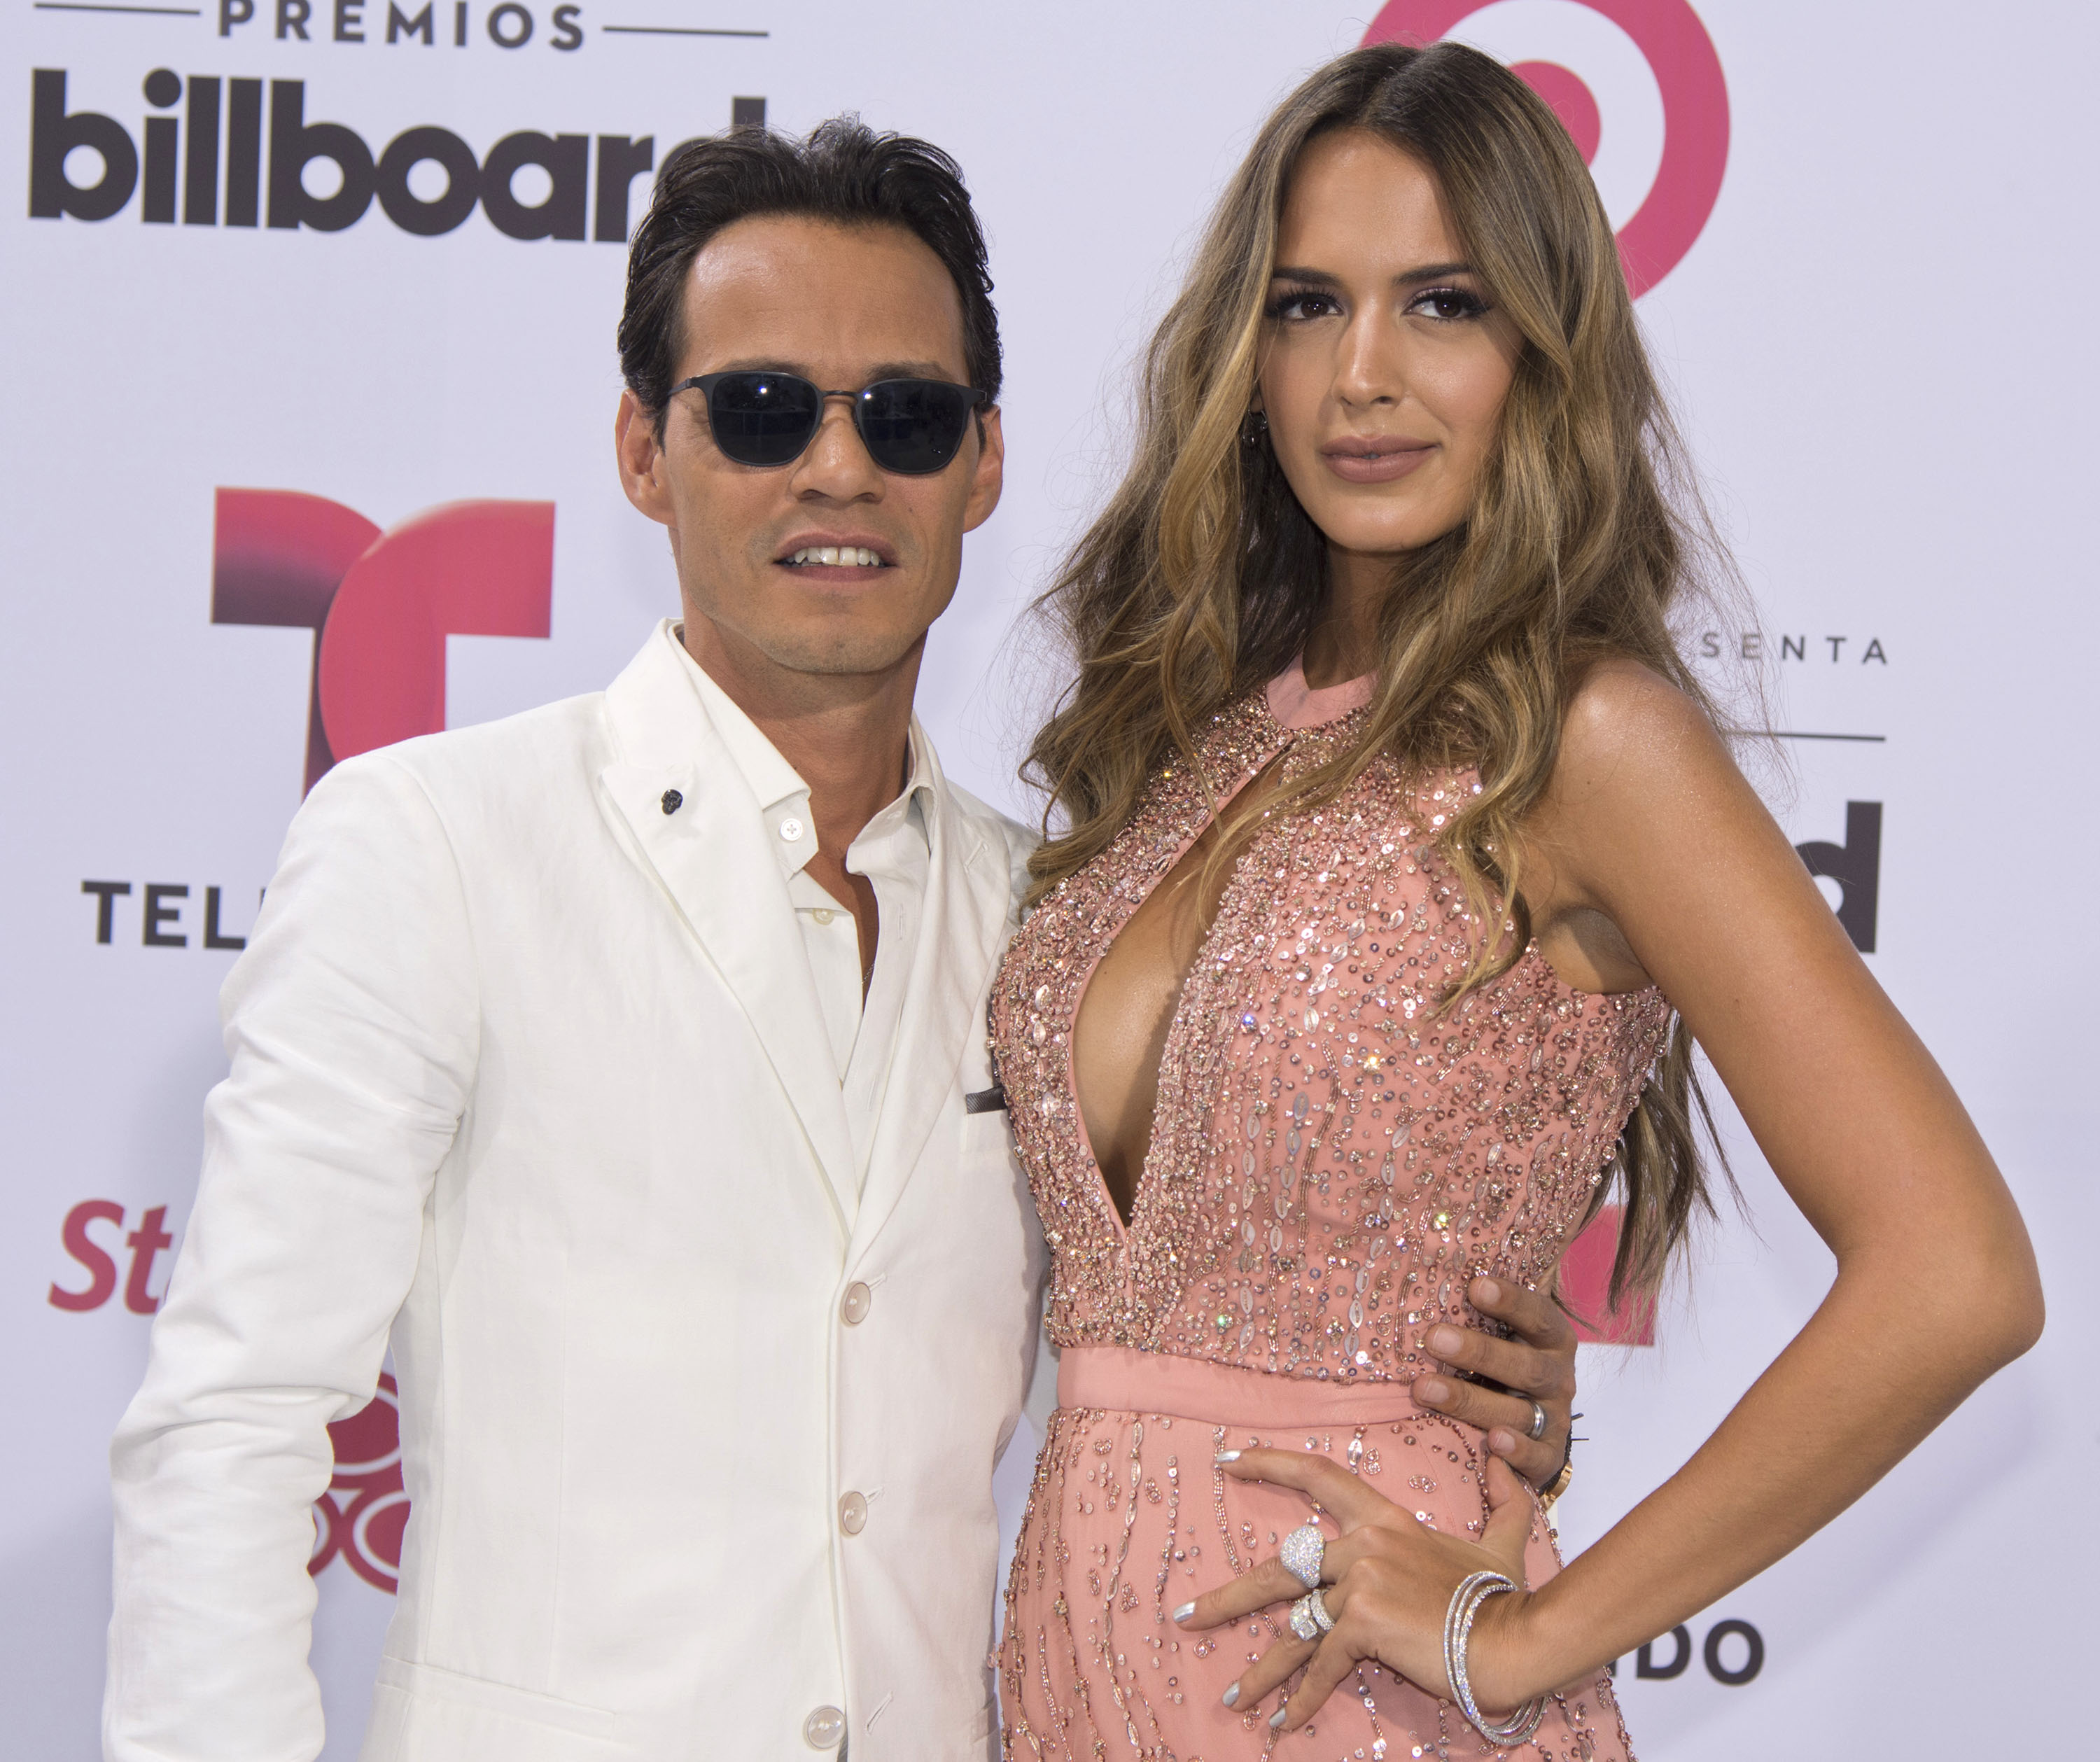 Jennifer Lopez and Marc Anthony Kiss After Shannon De Lima Separation: JLo and Marc Back Together?